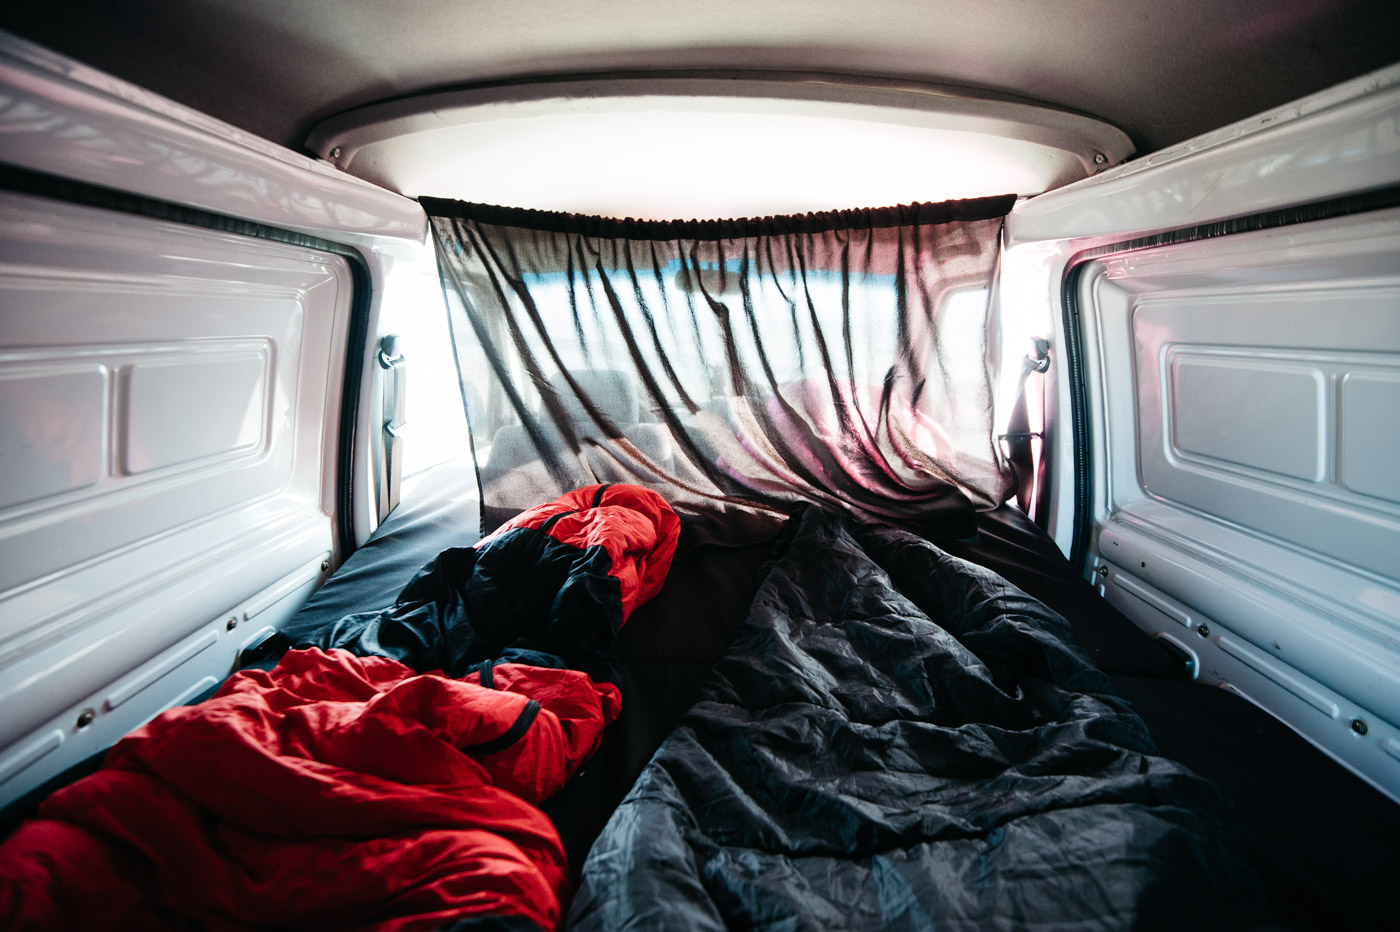 Wicked SouthAmerica Campervan Review Interiour-Sleeping Area